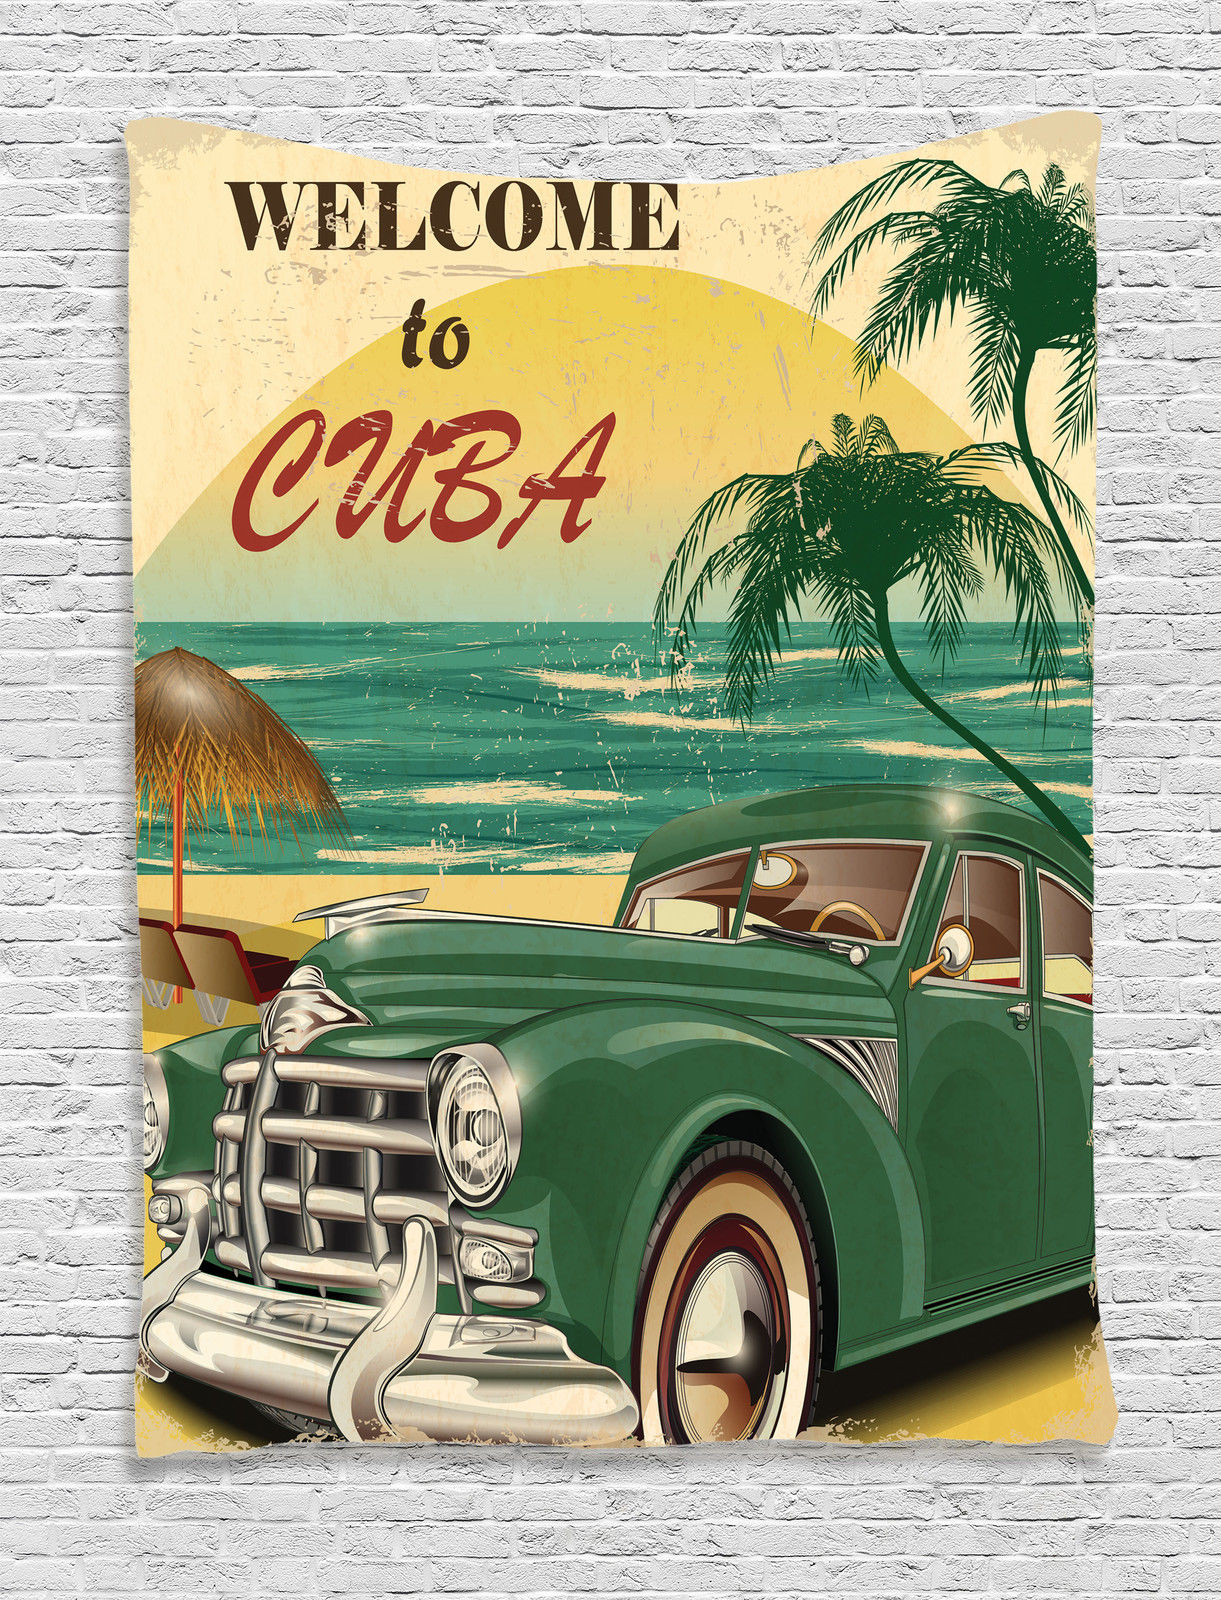 1950S Decor Wall Hanging Tapestry, Nostalgic Welcome To Cuba Artsy Print  With Classic Car Beach Ocean And Palm Trees, Bedroom Living Room Dorm